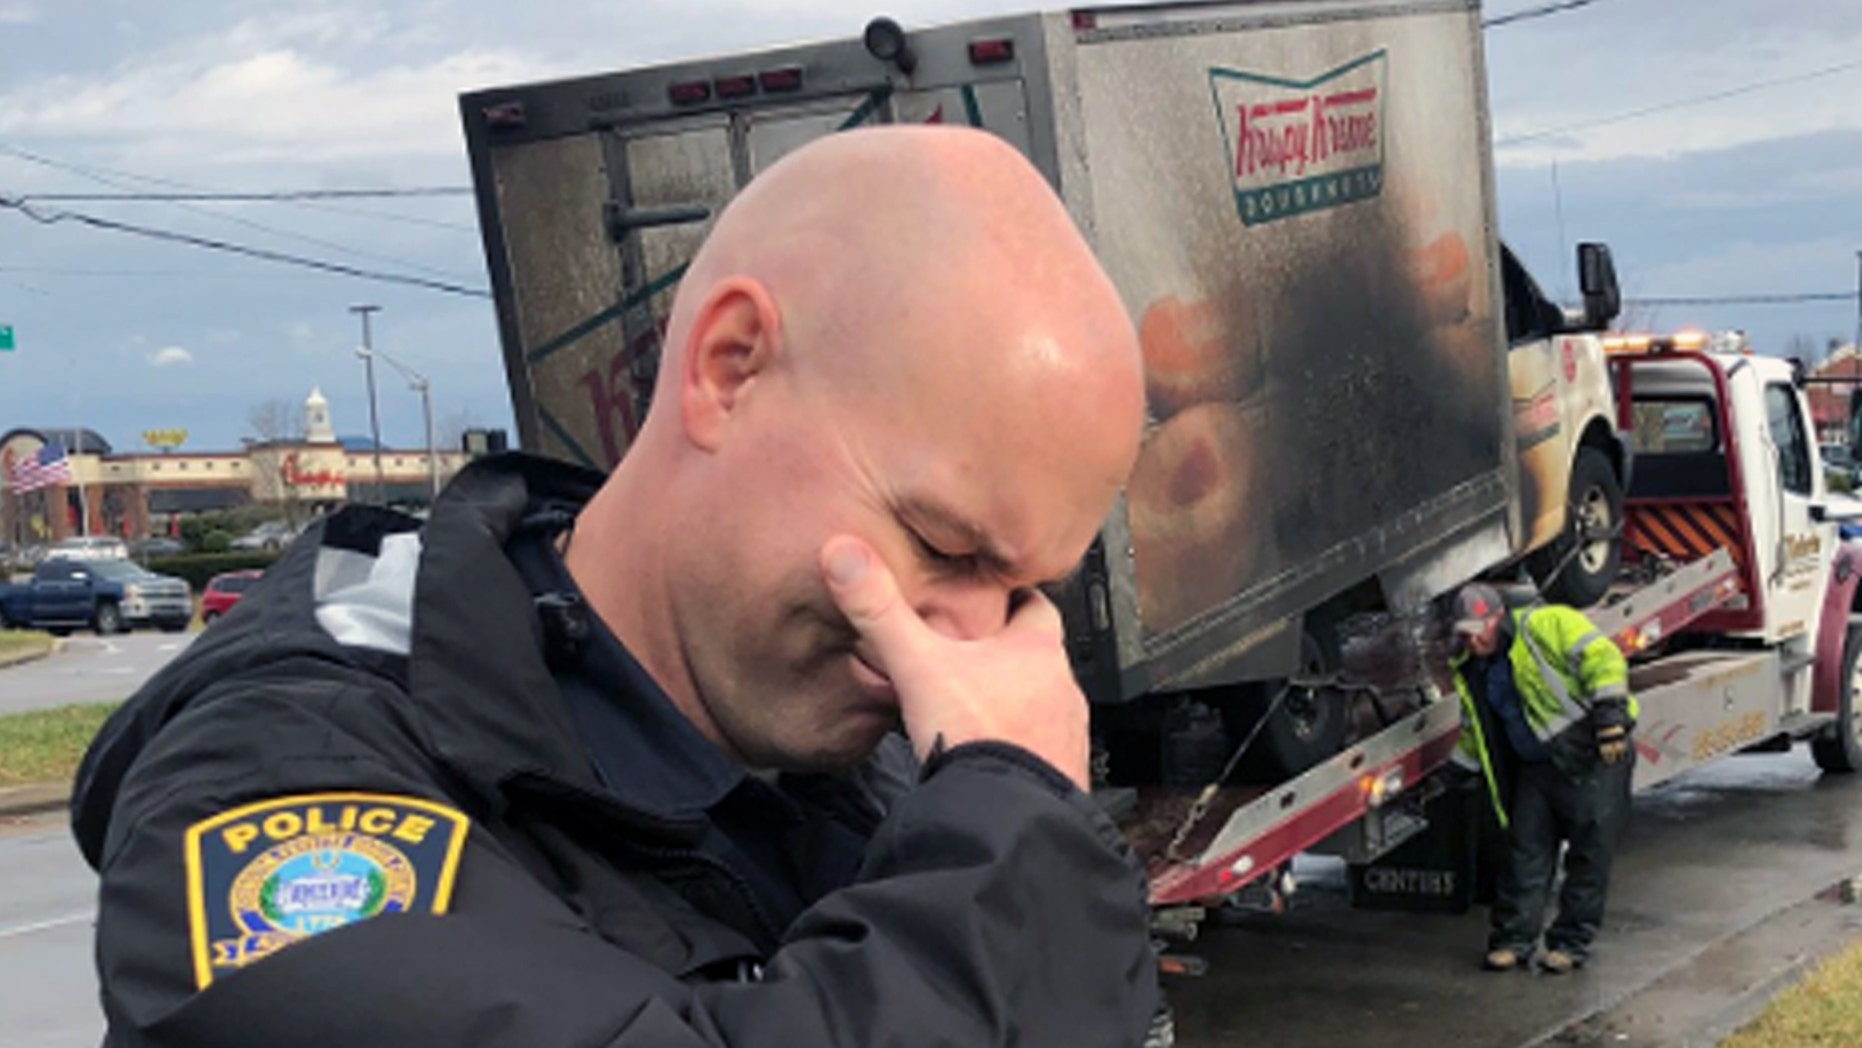 Cops grieve 'Krispy Kreme Doughnuts' lost in NYE truck fire: 'No words'